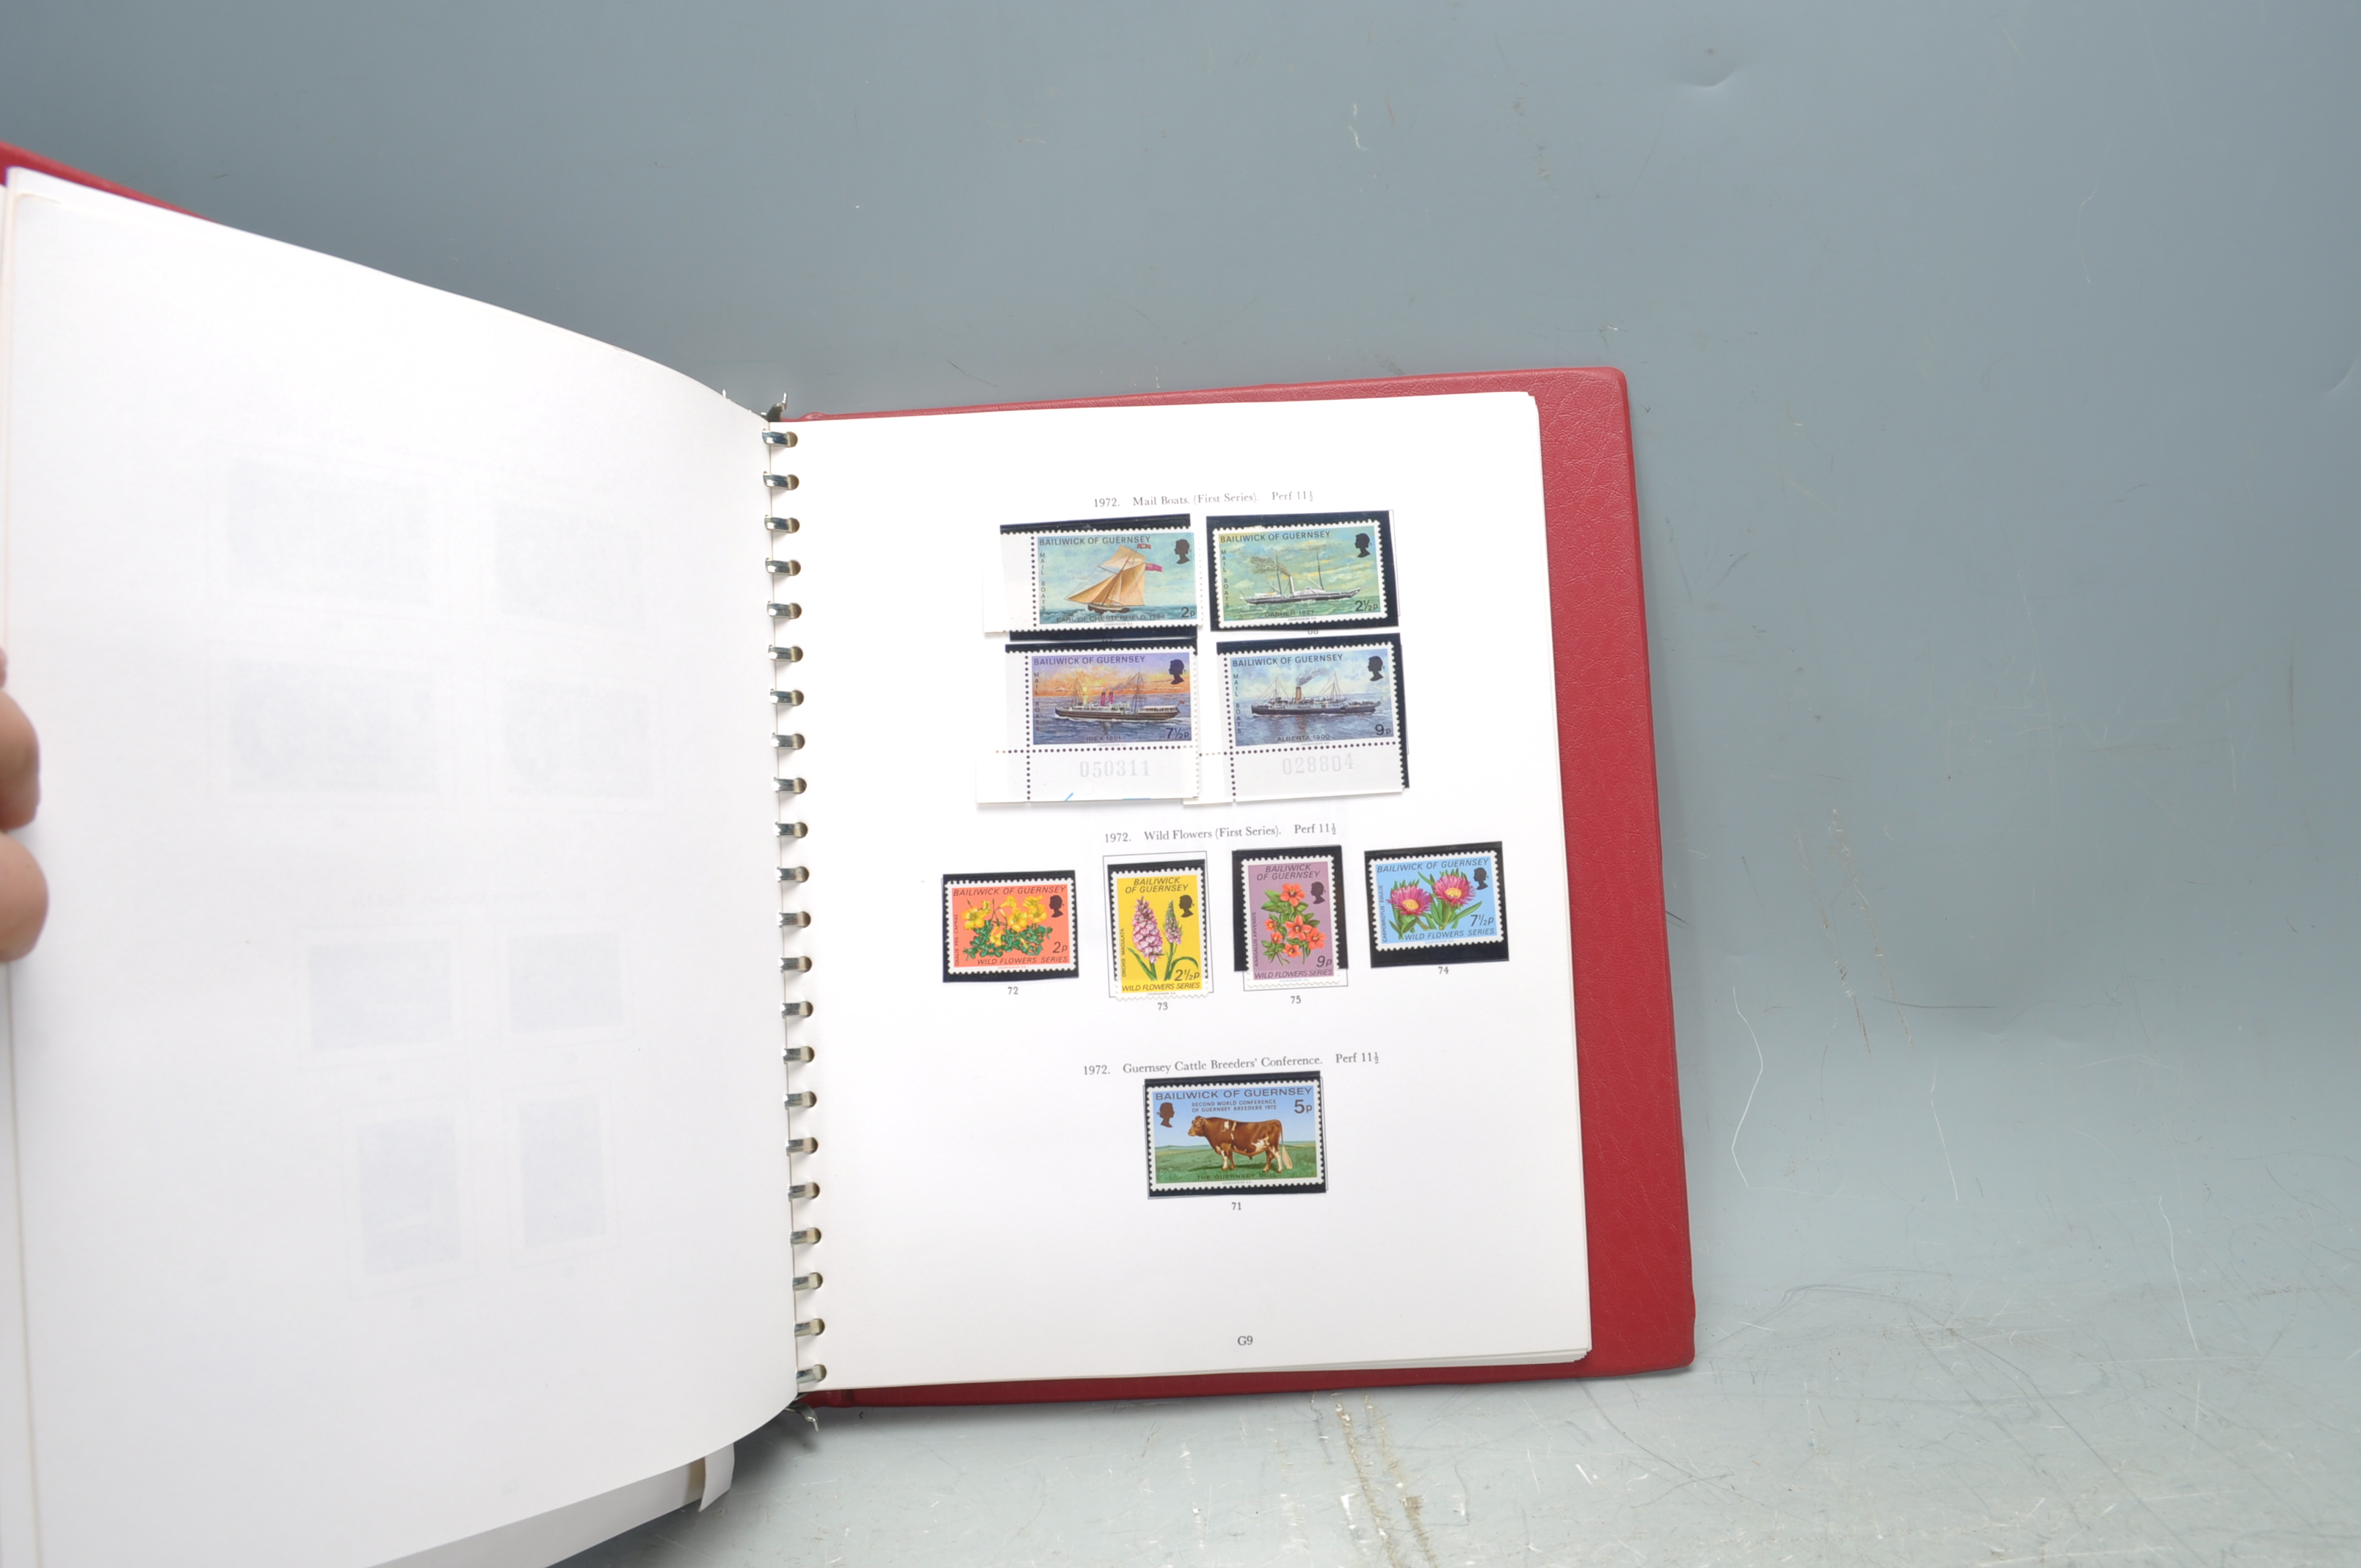 STAMPS - CHANNEL ISLANDS AND ISLE OF MAN - Image 12 of 13